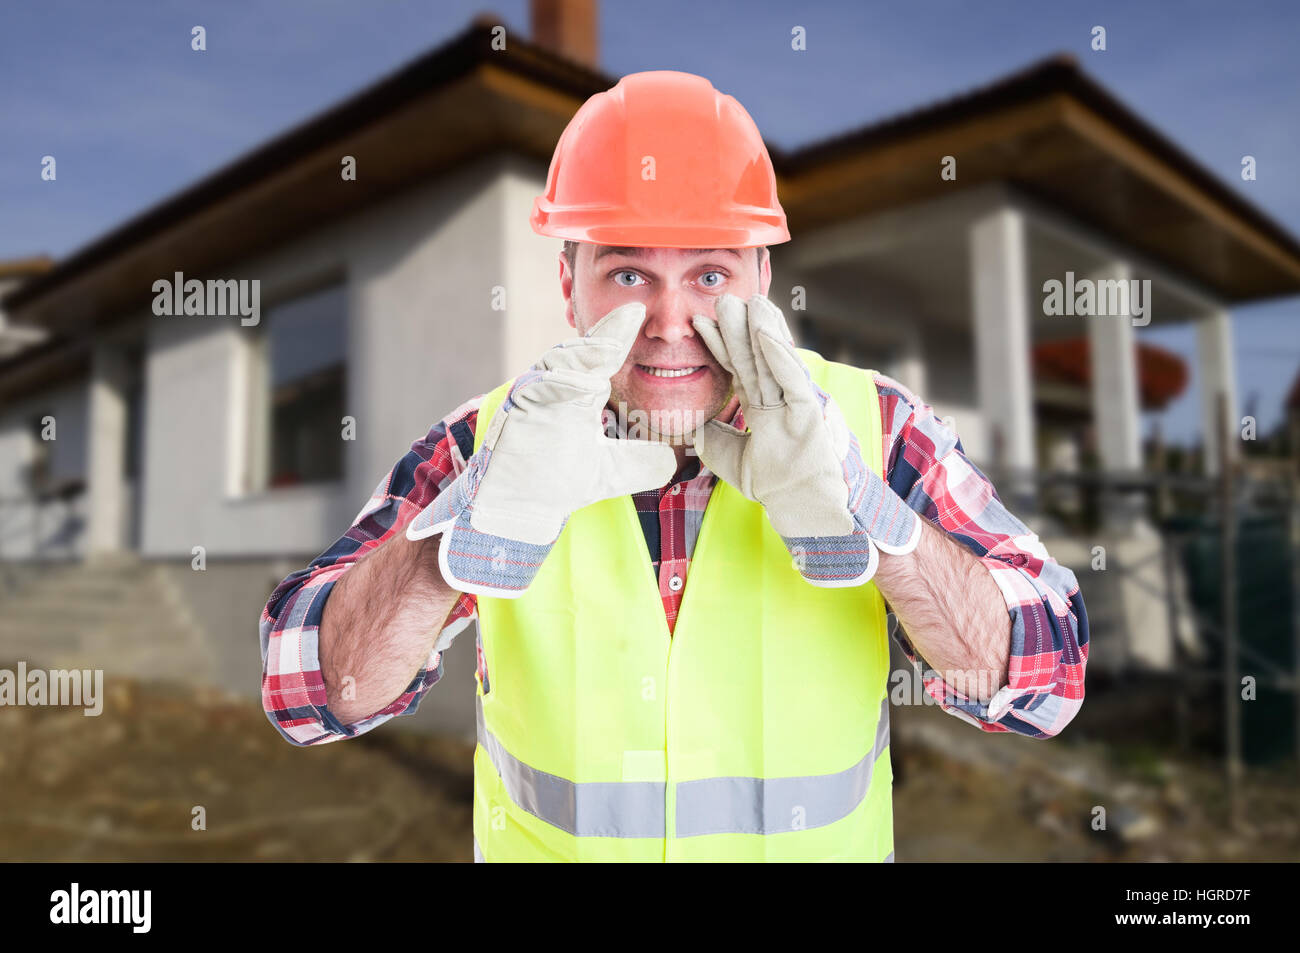 Constructor on construction site with protection equipment screaming or announcing something - Stock Image